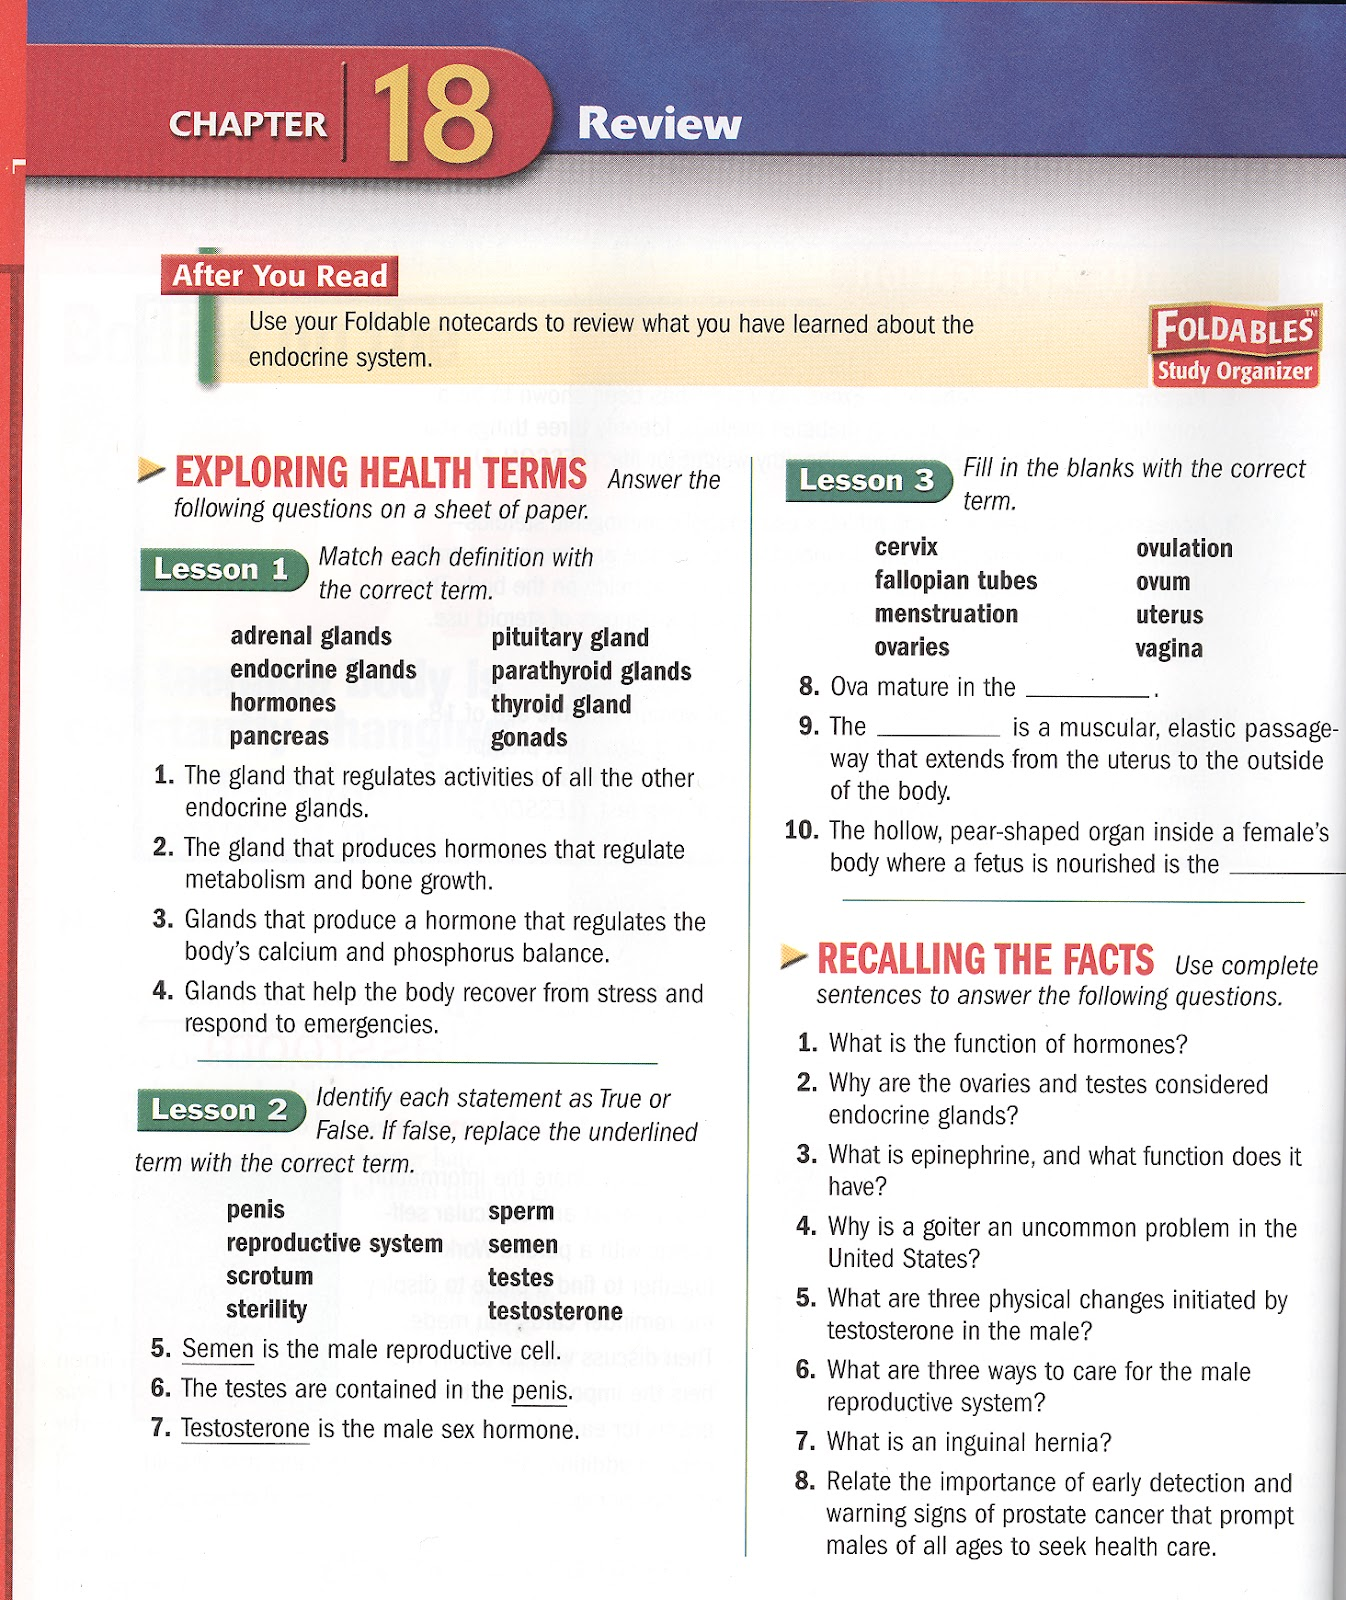 Chapter 16 Endocrine System Worksheet Answers - Kidz Activities